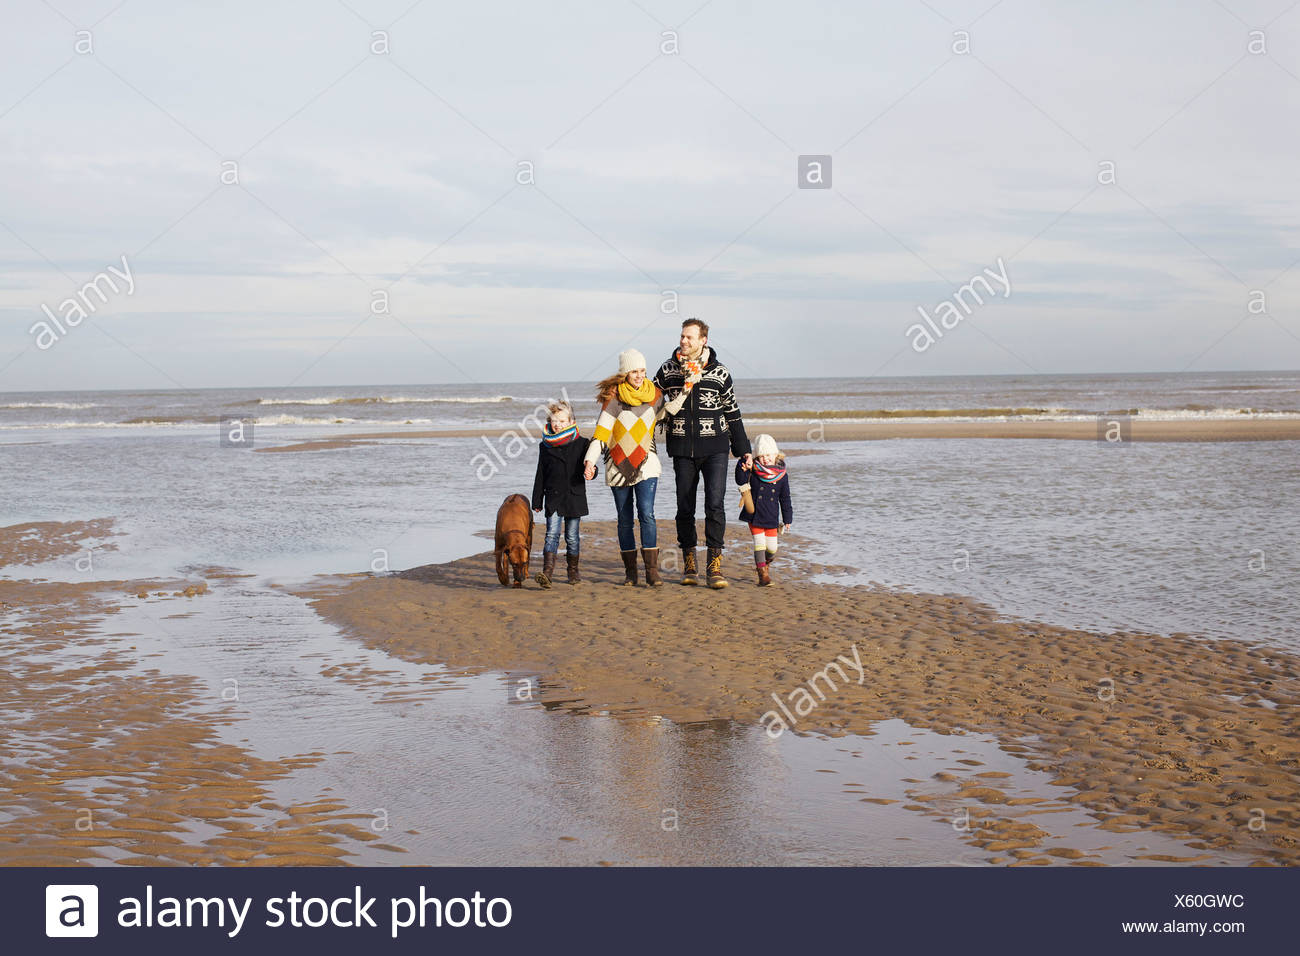 Mid adult parents with son, daughter and dog strolling on beach, Bloemendaal aan Zee, Netherlands - Stock Image